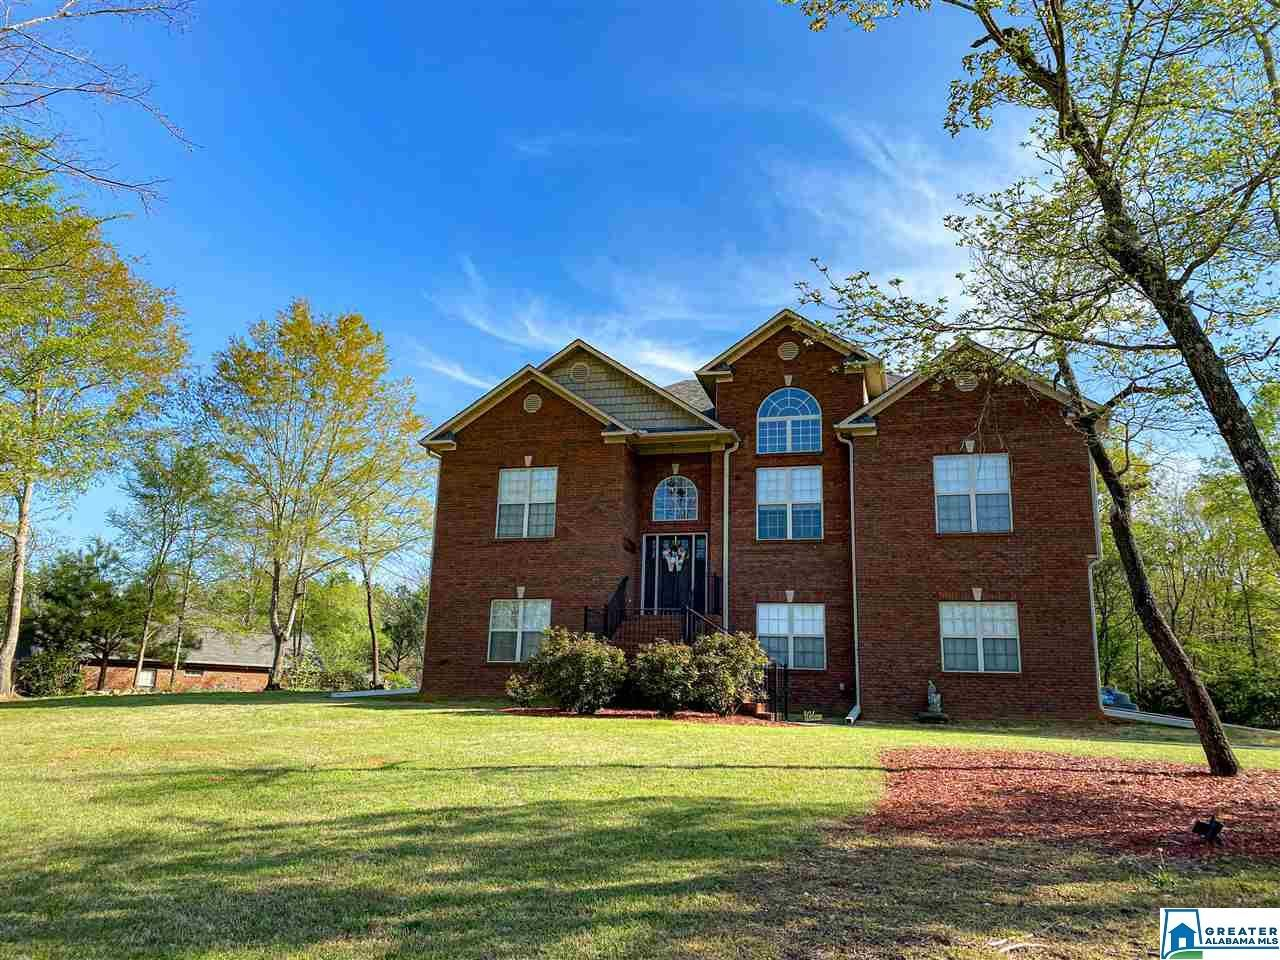 165 ROCKWELL DR, Pell City, AL 35128 - MLS#: 867405